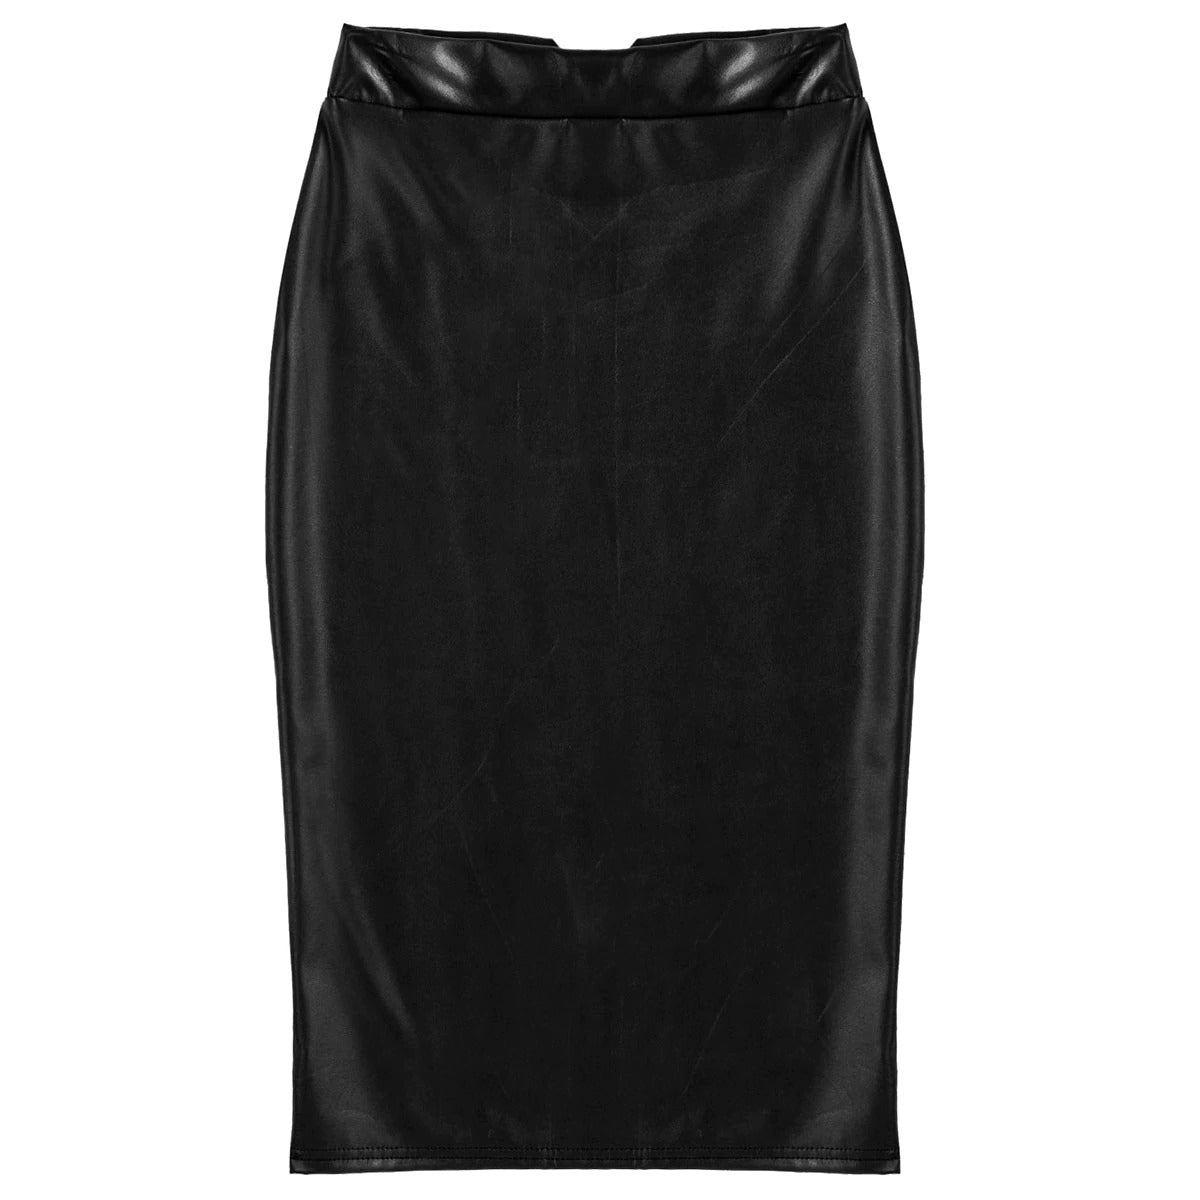 Women's Solid Color High Waist Knee Length Pencil Skirt / Ladies Party Sexy Skirts - HARD'N'HEAVY